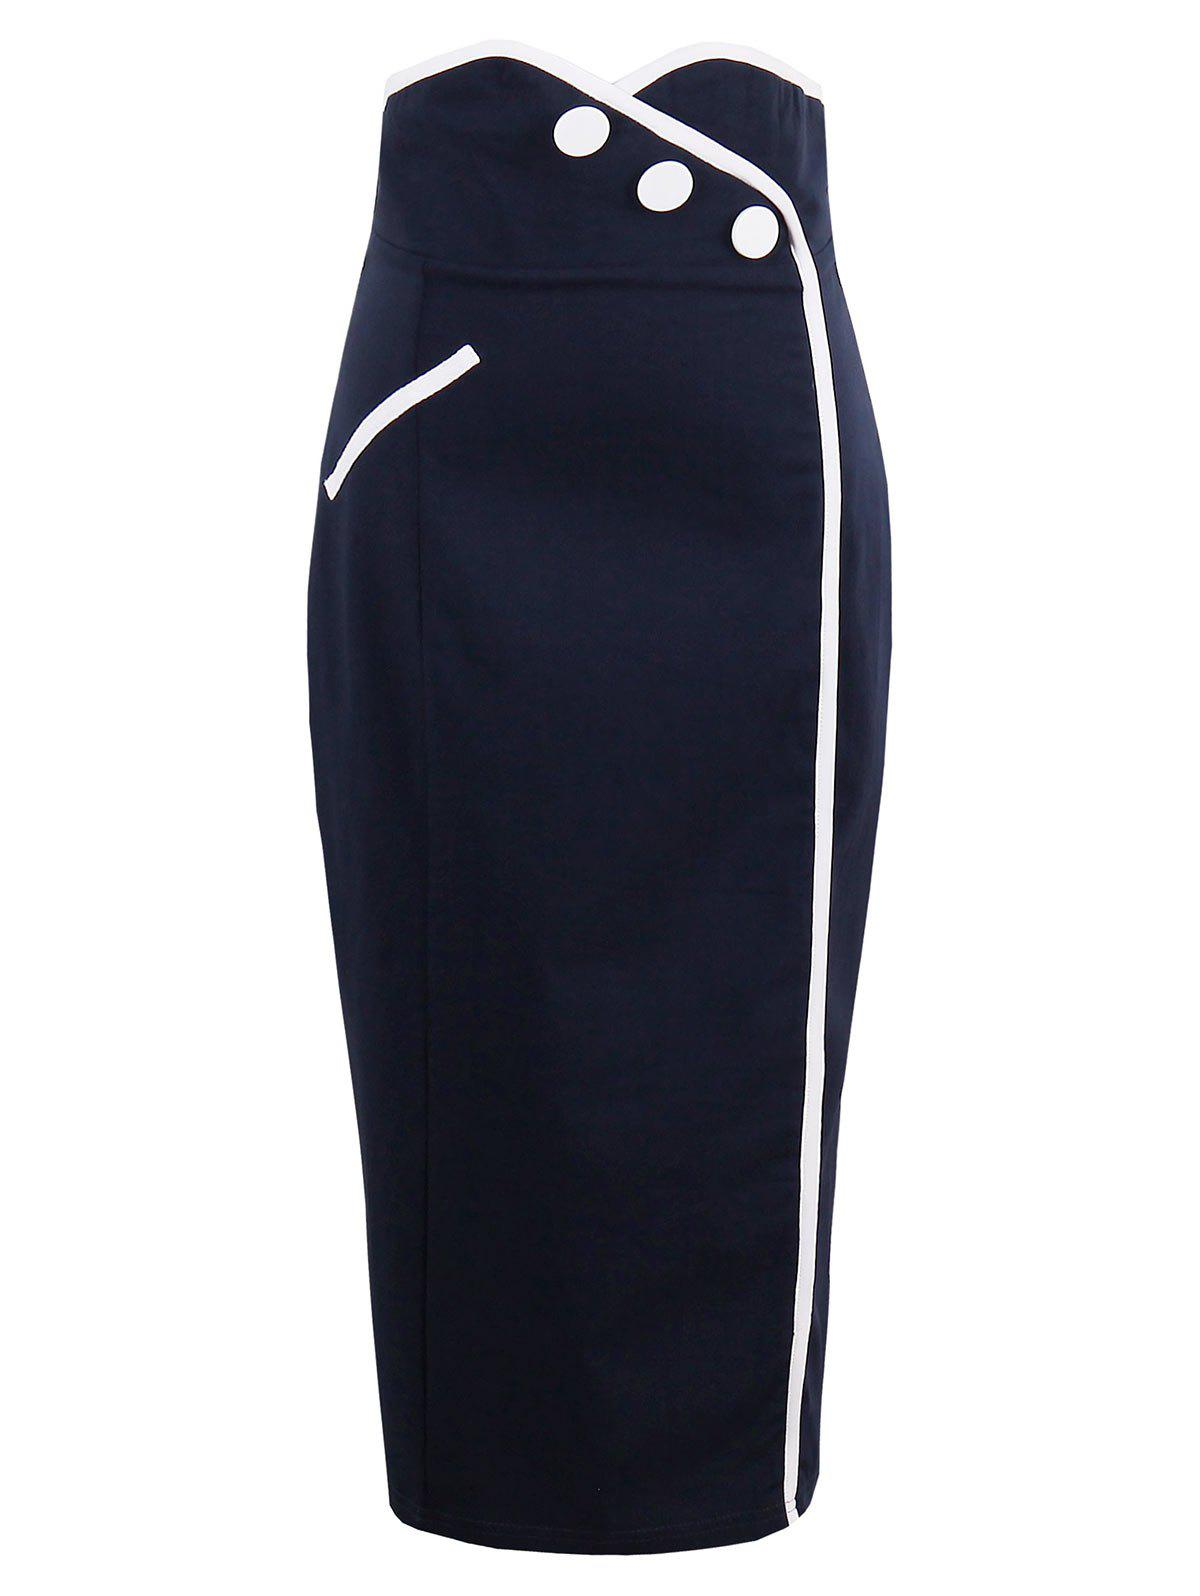 Chic High Waist Tight Sheath Work Skirt